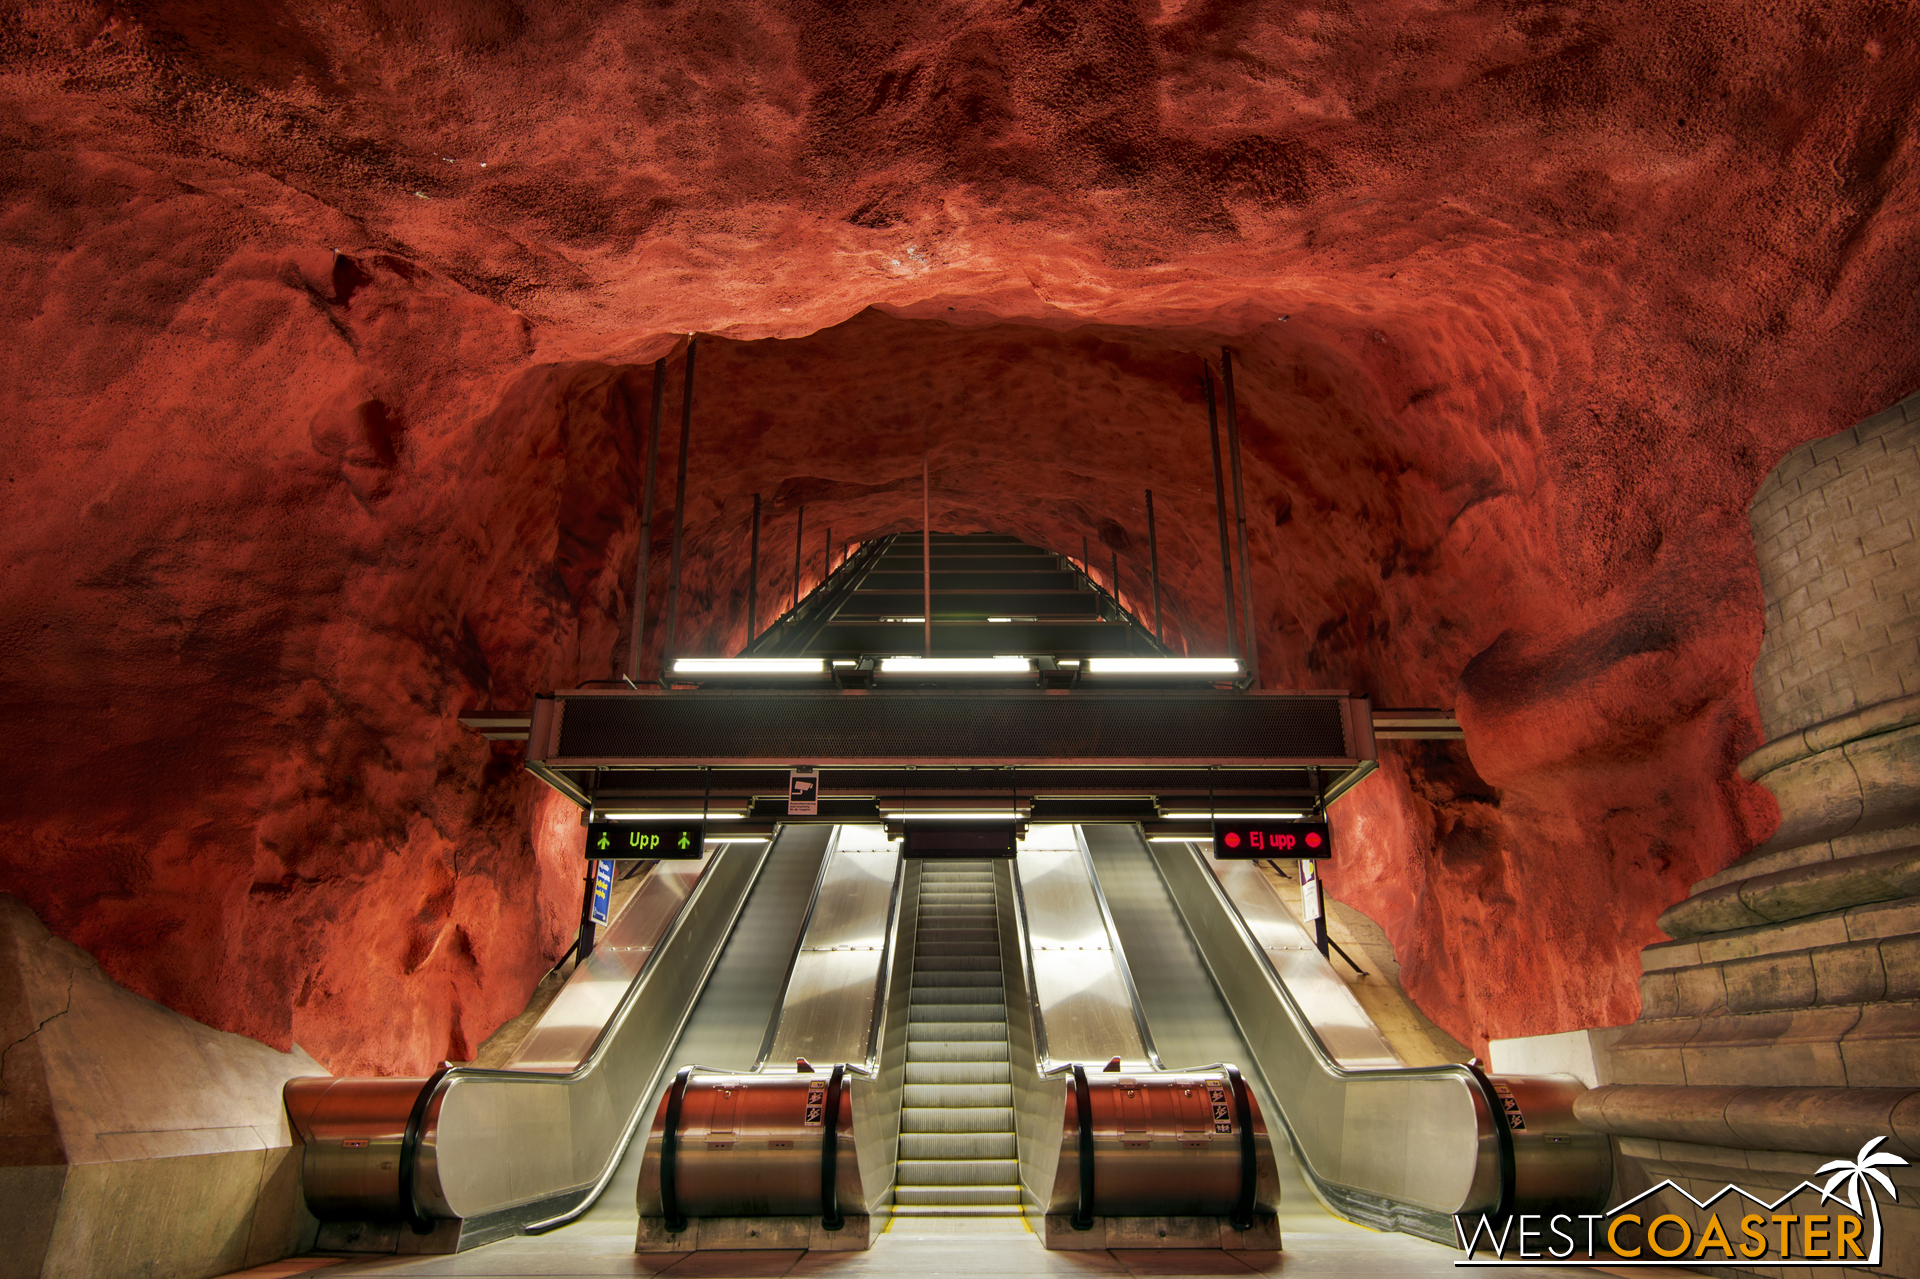 The T-Bana's Radhuset station features what is made out to be an ethereal cavern of exposed red bedrock, as though the rail line was routed into this mystical subterranean chamber.